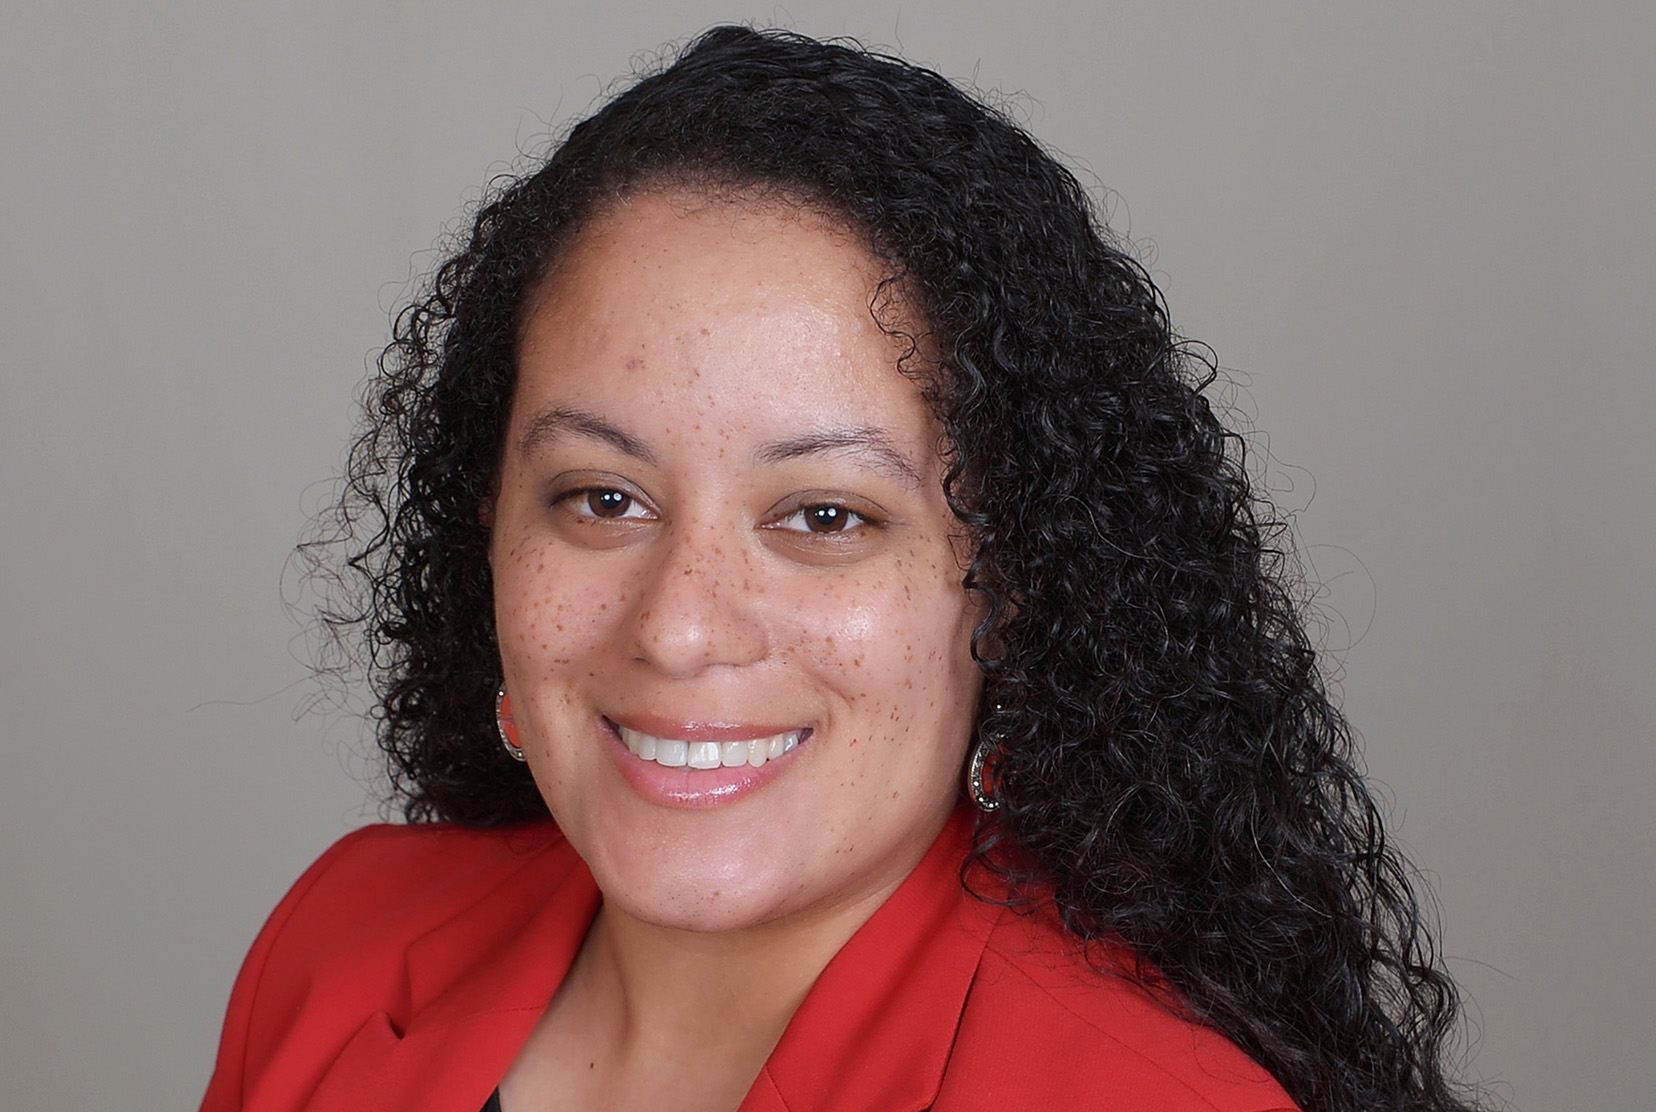 At age 28, Leah Williams of the Classes of 2015 and 2016, is the youngest national president in the history of the Delaware State University Alumni Association.